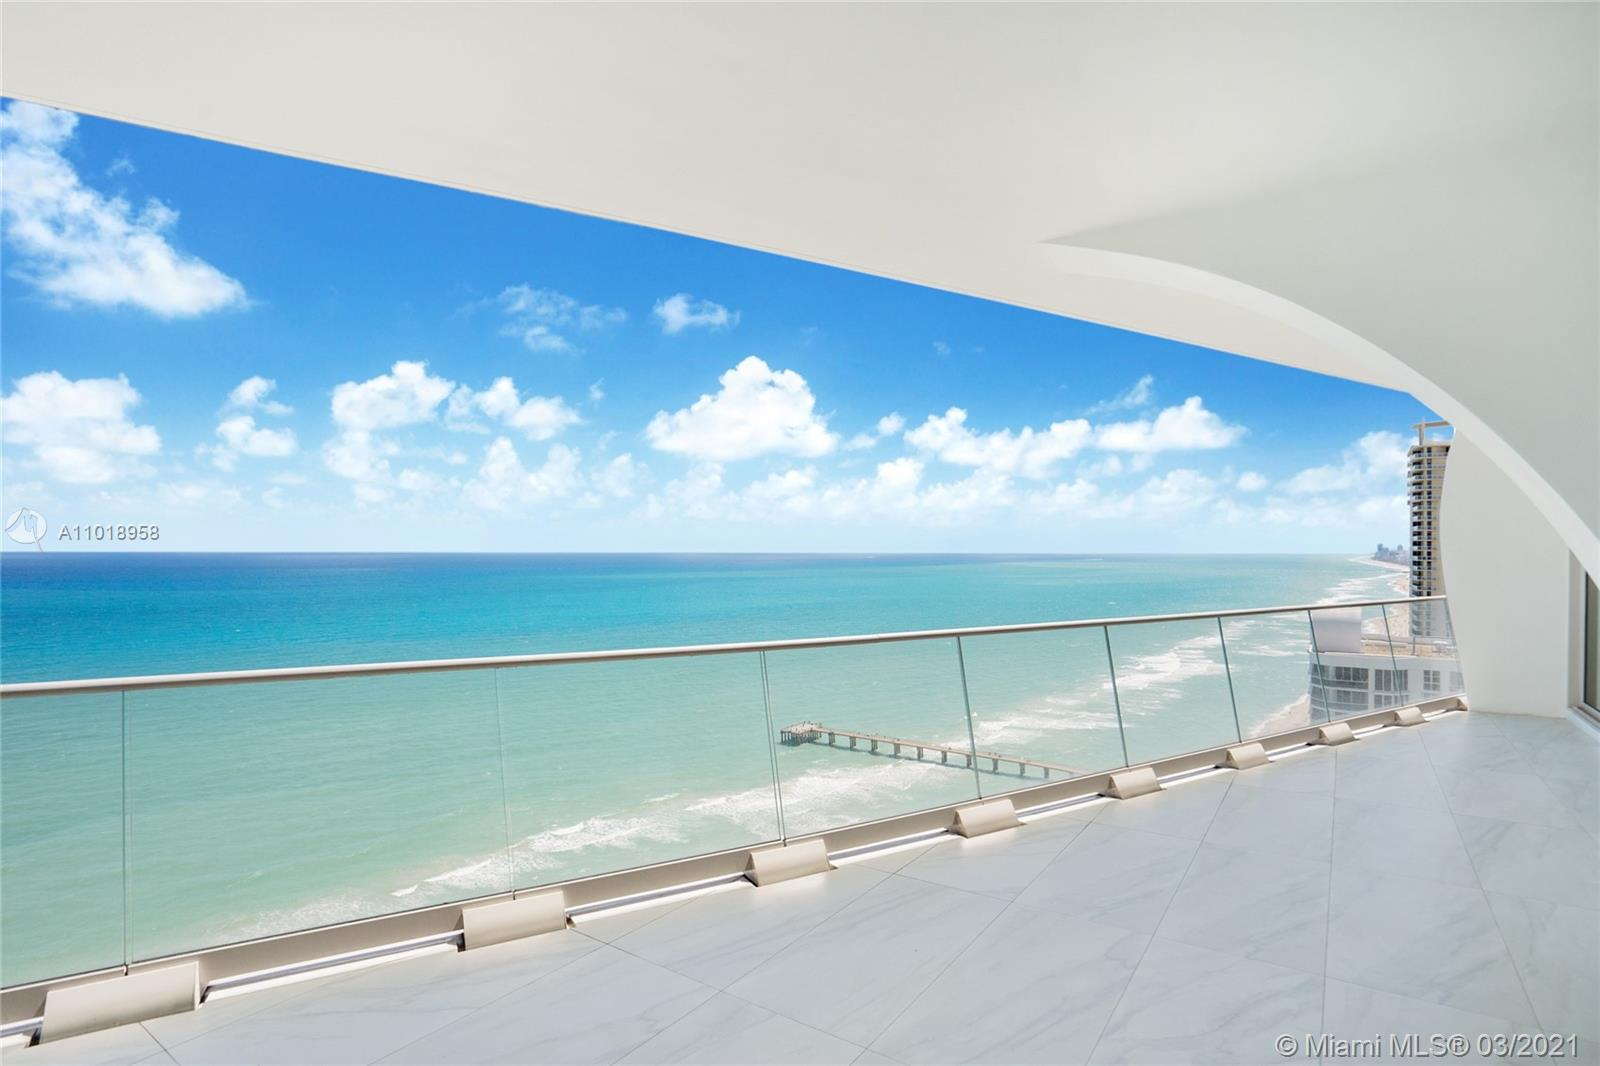 Impeccable unit in the exclusive masterpiece of Pritzker award-winning architects Herzog & de Meuron. The most desirable layout  including family room and maids quarters. Unobstructed, direct ocean, intracoastal and bay views. Private elevator and foyar entry, Snadeiro Kitchen with Corian quartz countertops and subzero applicances. Lots of amenities that provide a resort lifestyle where you can enjoy the Billiard Room, Sauna, Spa/Hot Tub, Exercise Room, Heated pool, Clubhouse-Clubroom, Library, Child and Teenage Play Area, Private Beach Pavillion, on-site Bar and Restaurant.